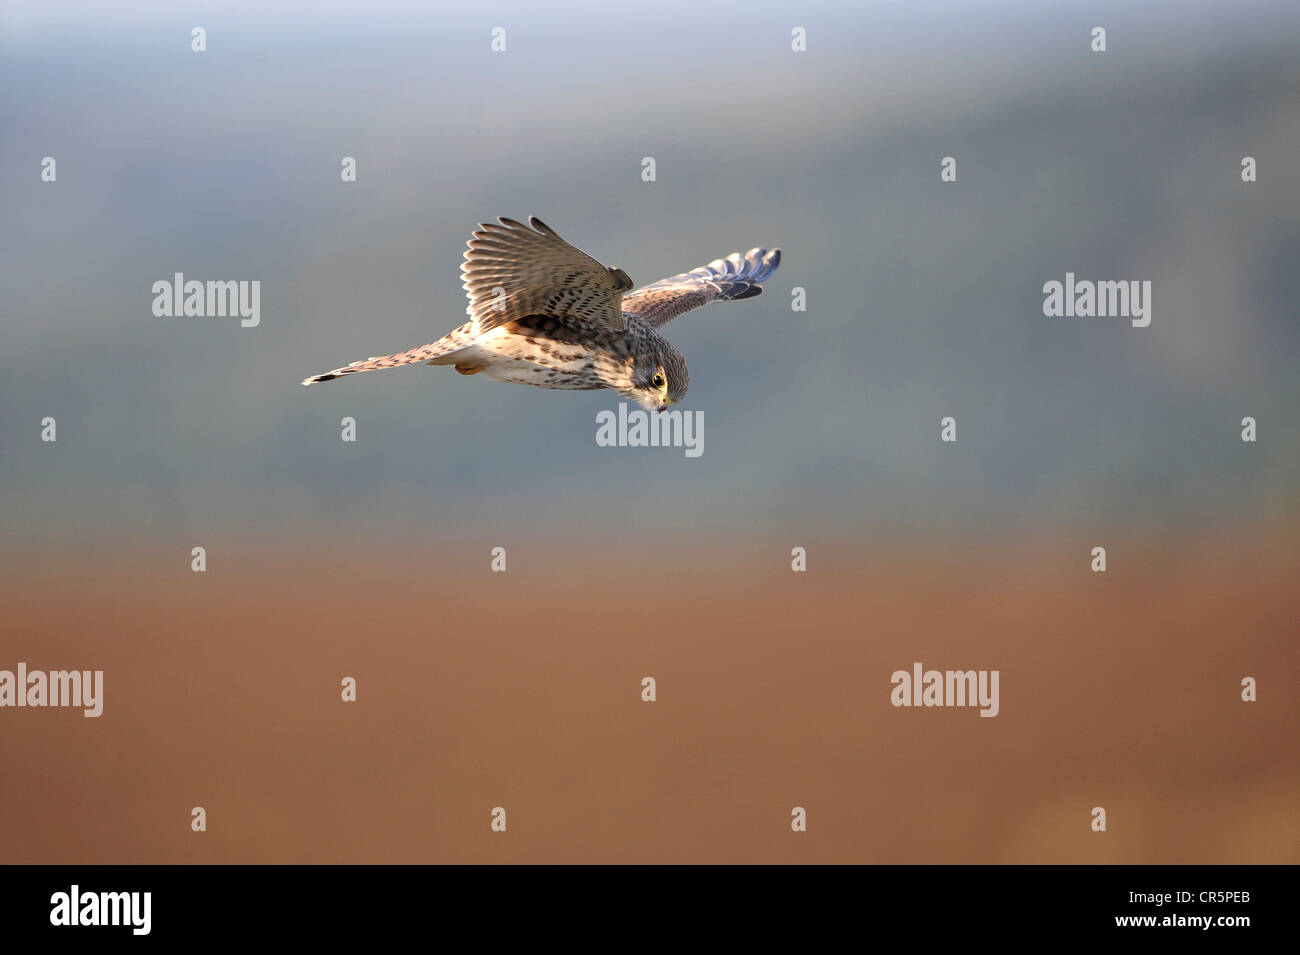 Crécerelle (Falco tinnunculus), planant, Germany, Europe Photo Stock